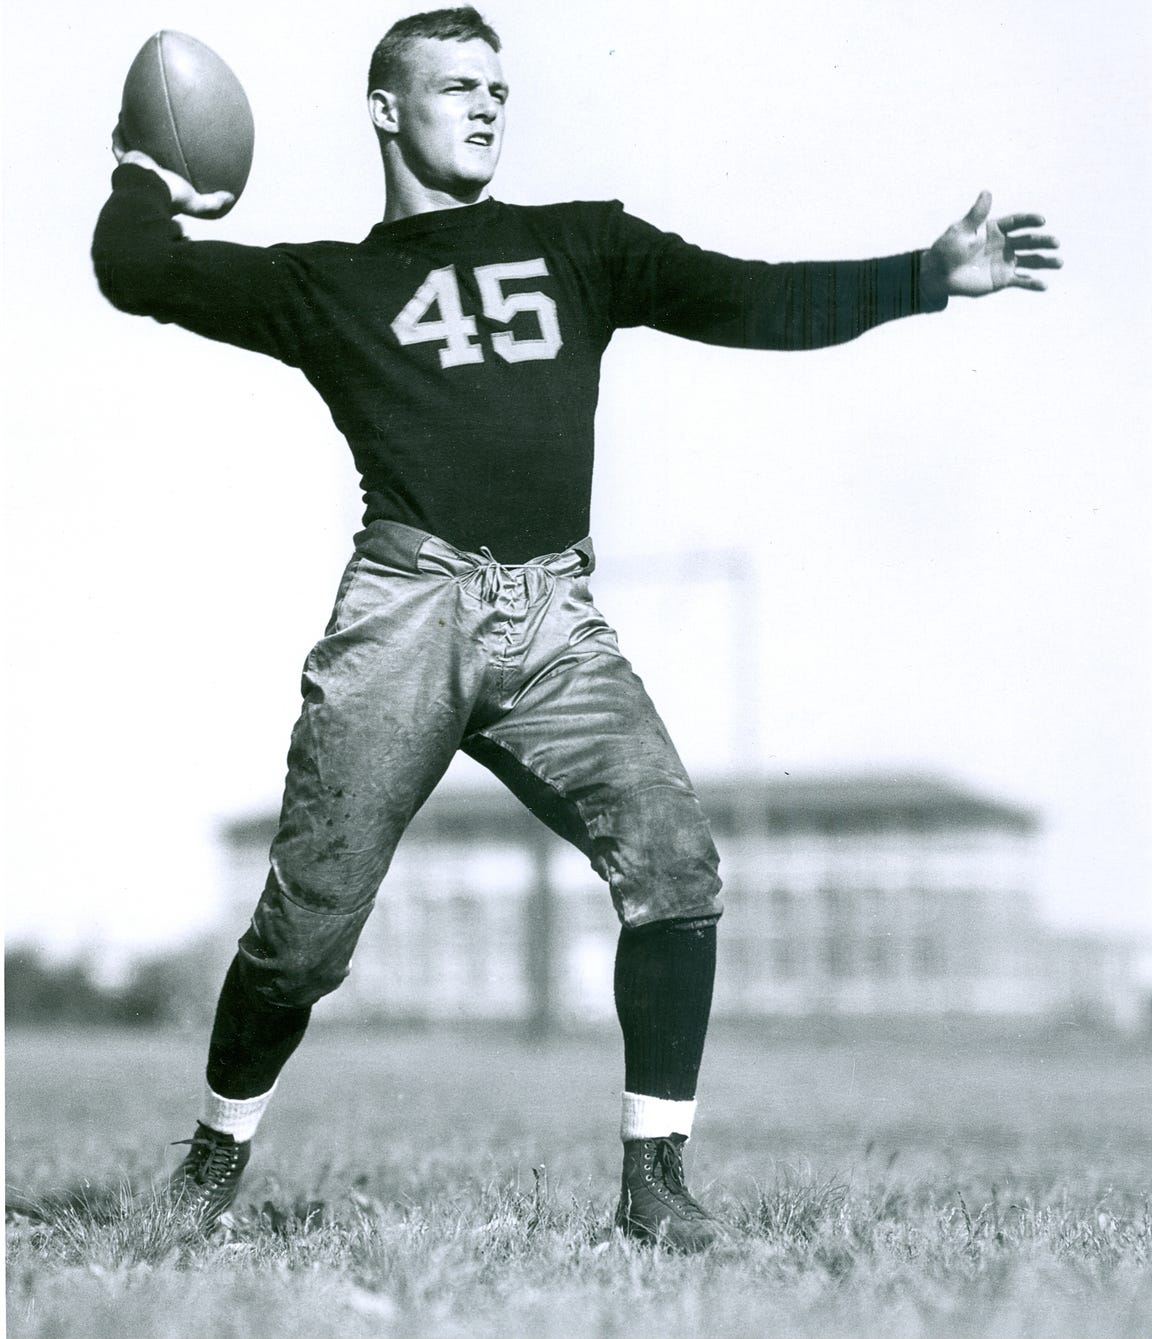 Duane Purvis, before switching his jersey number to 42, was an All-American in track and field in addition to football.